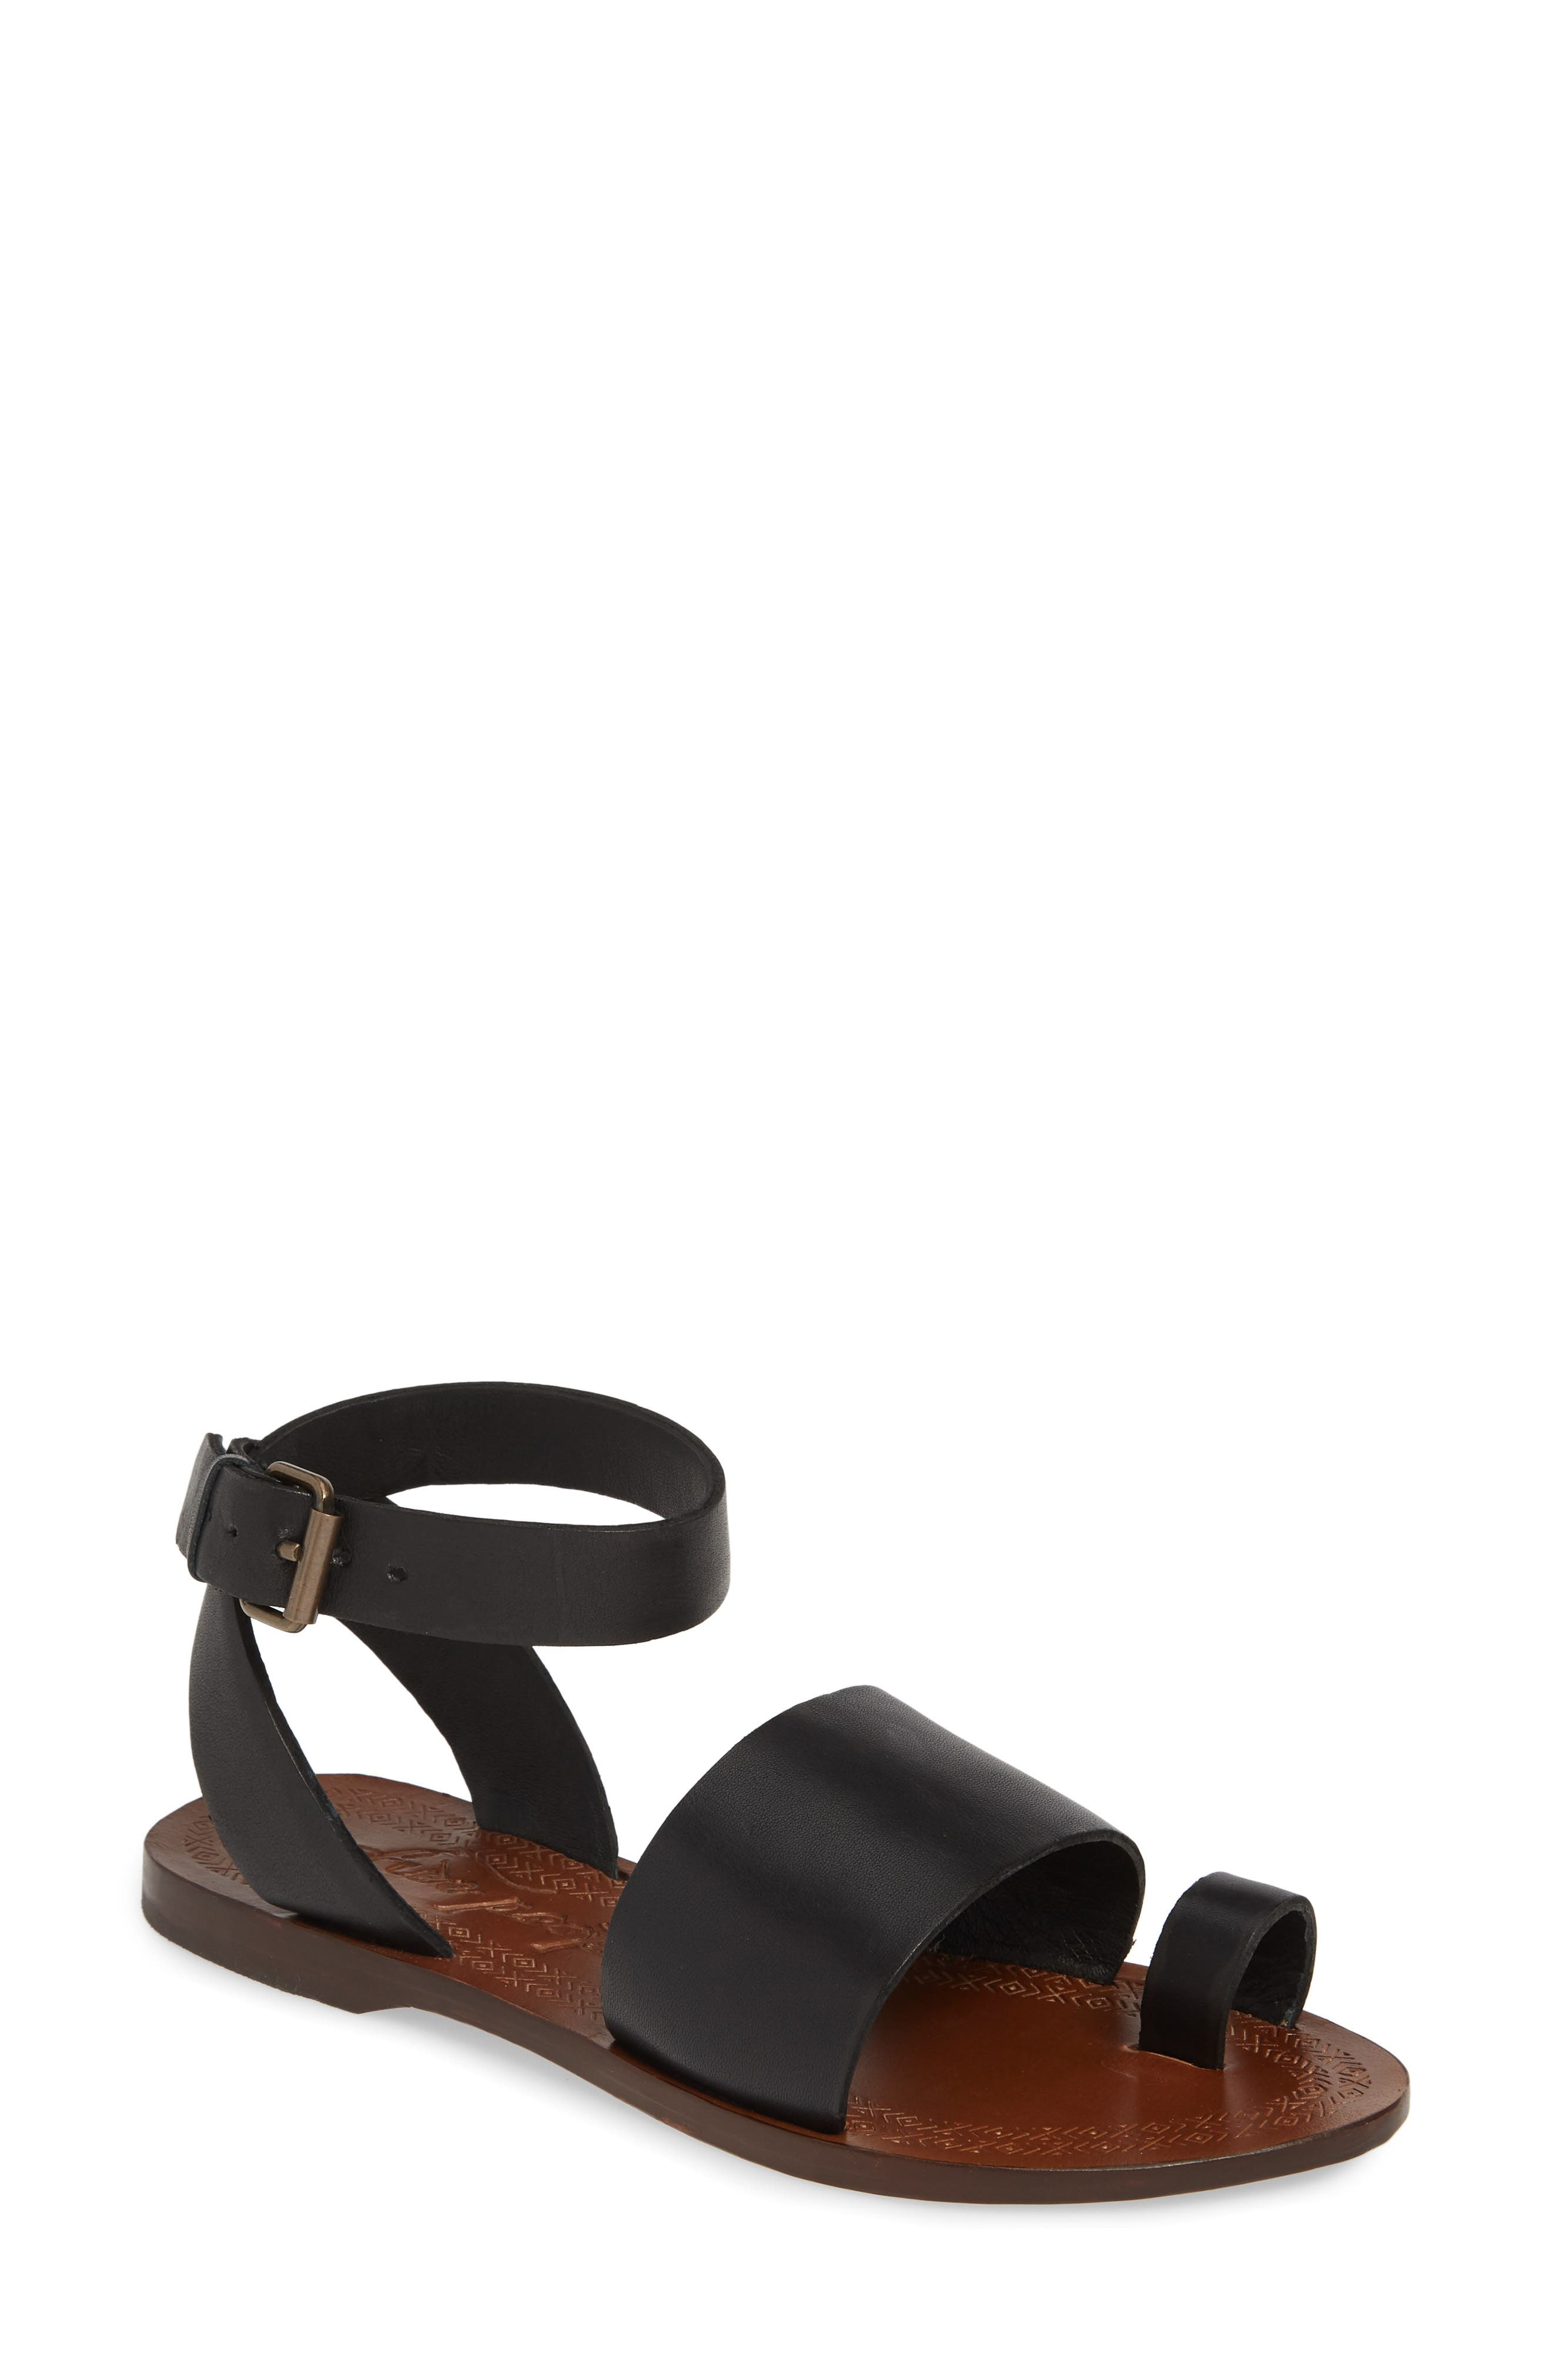 FREE PEOPLE Torrence Ankle Wrap Sandal, Main, color, OXFORD/ SANG